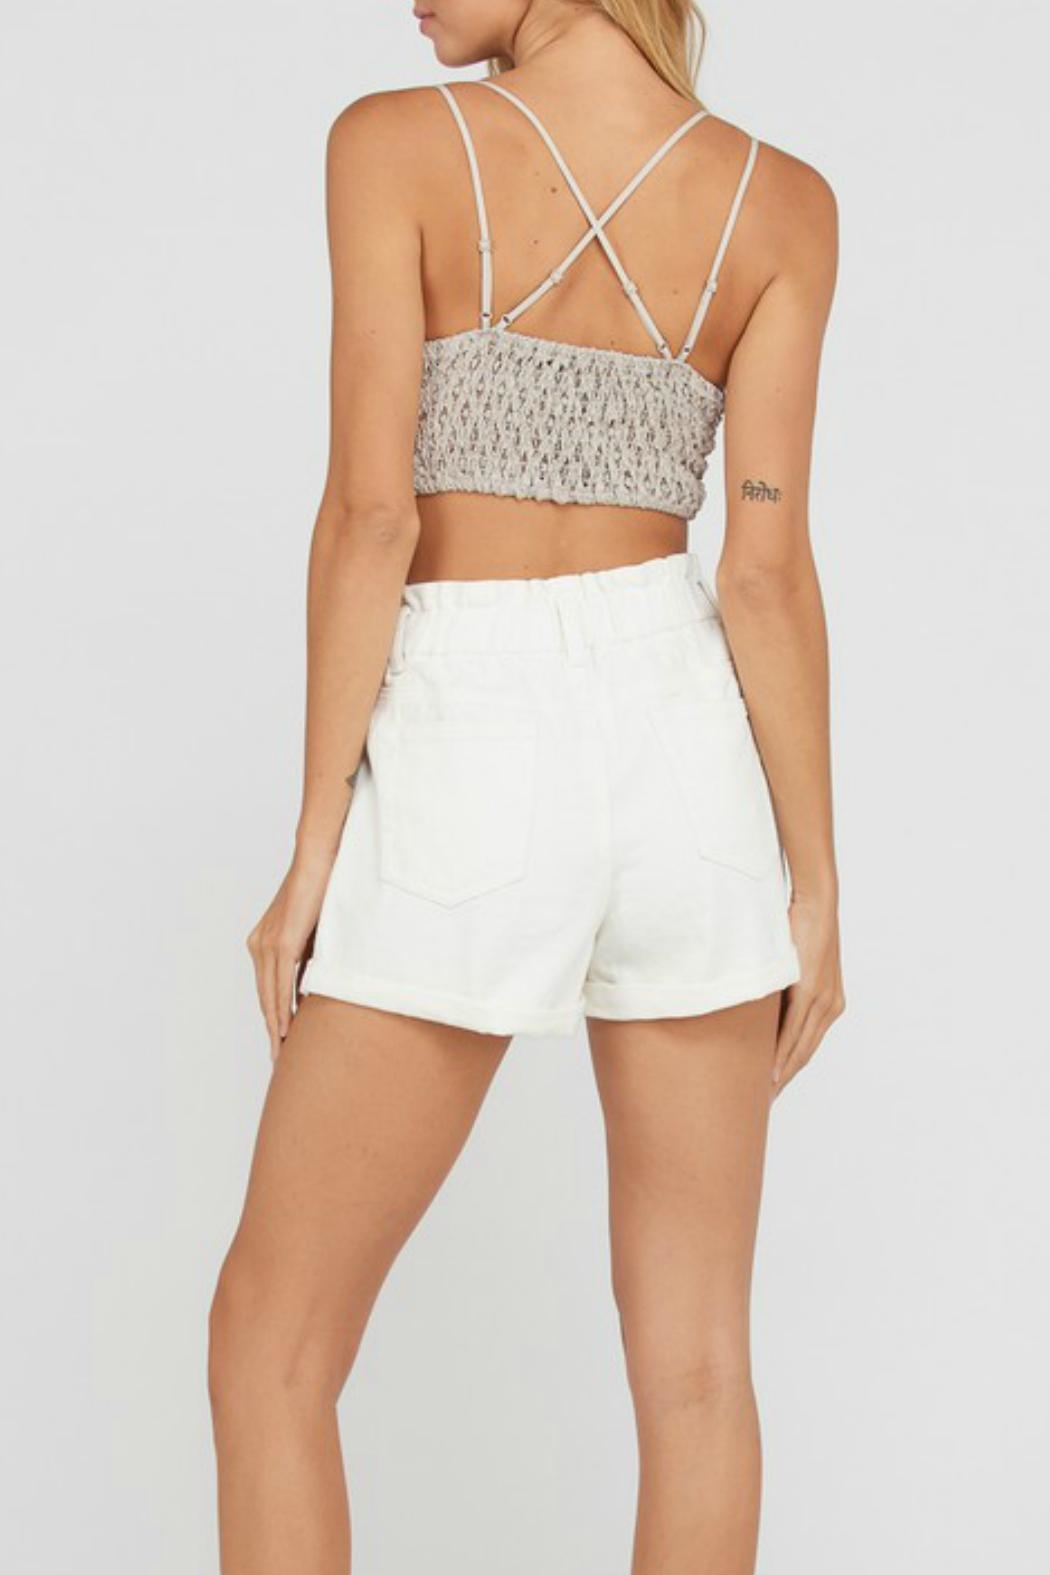 ee7eeaec3b8e7d Wishlist Scalloped Lace Bralette from Texas by POE and Arrows ...